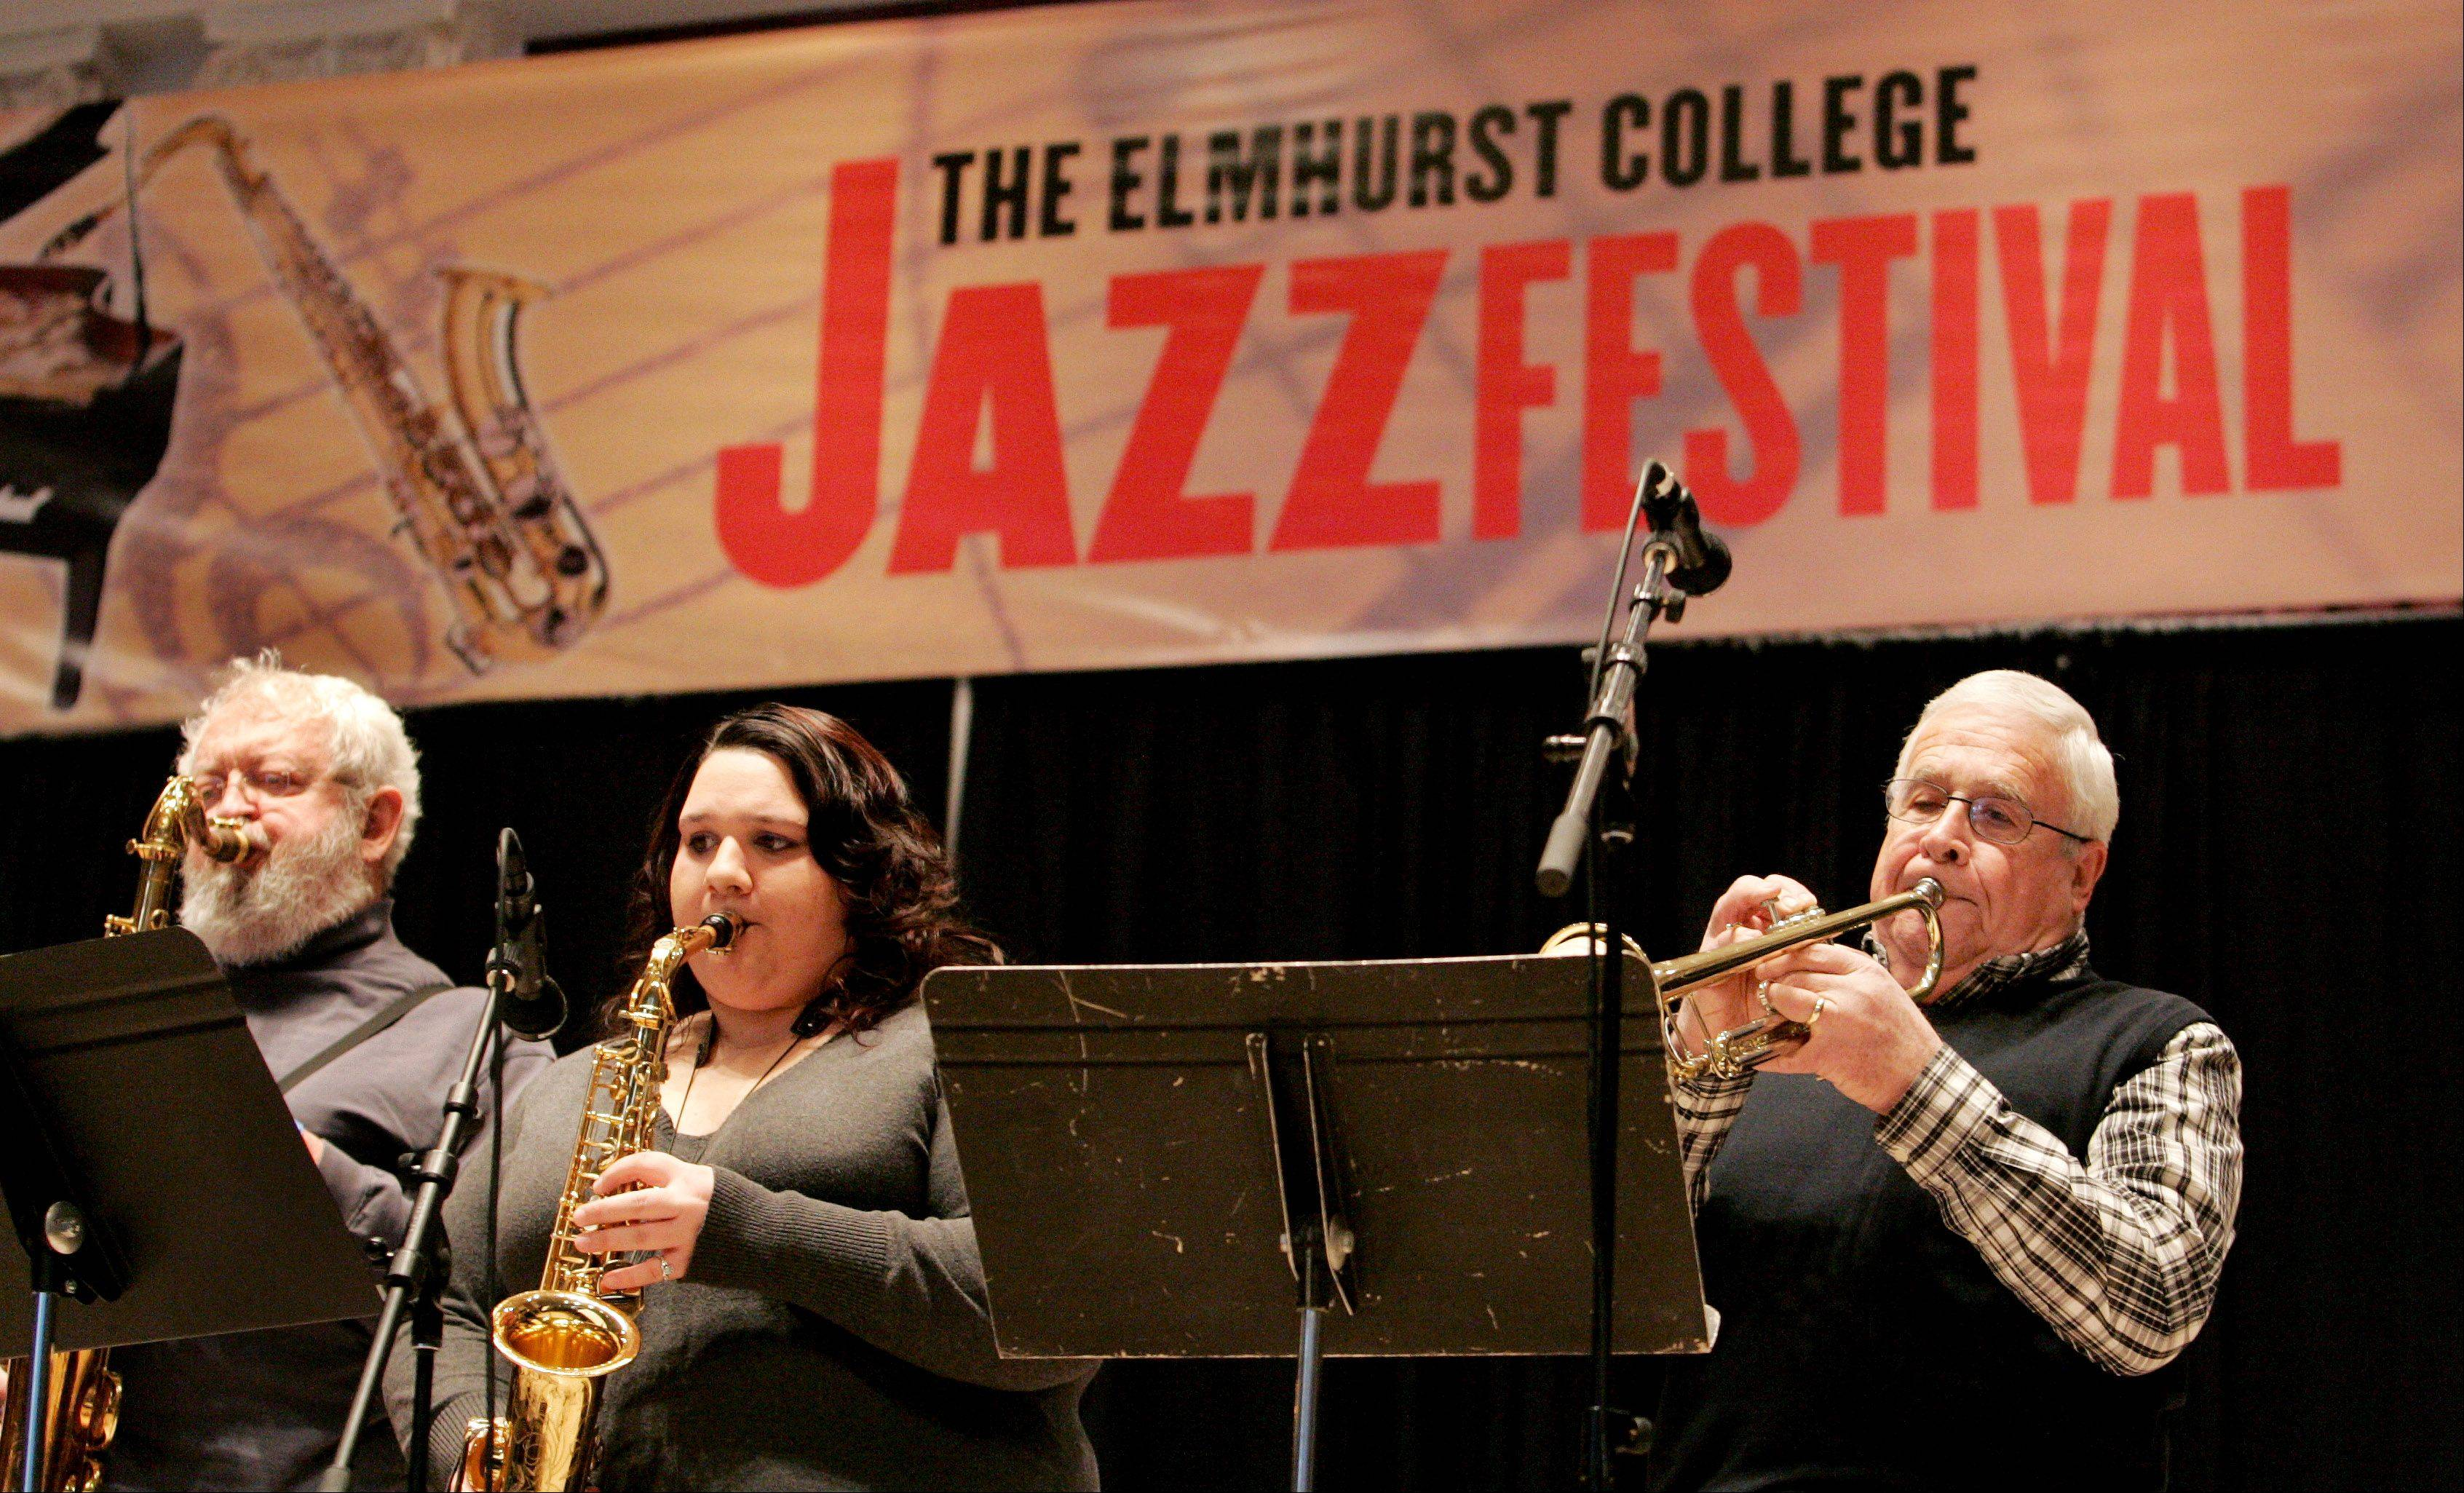 The Elmhurst College Jazz Festival runs through Sunday with a combination of college combos and professional musicians performing in Hammerschmidt Chapel.